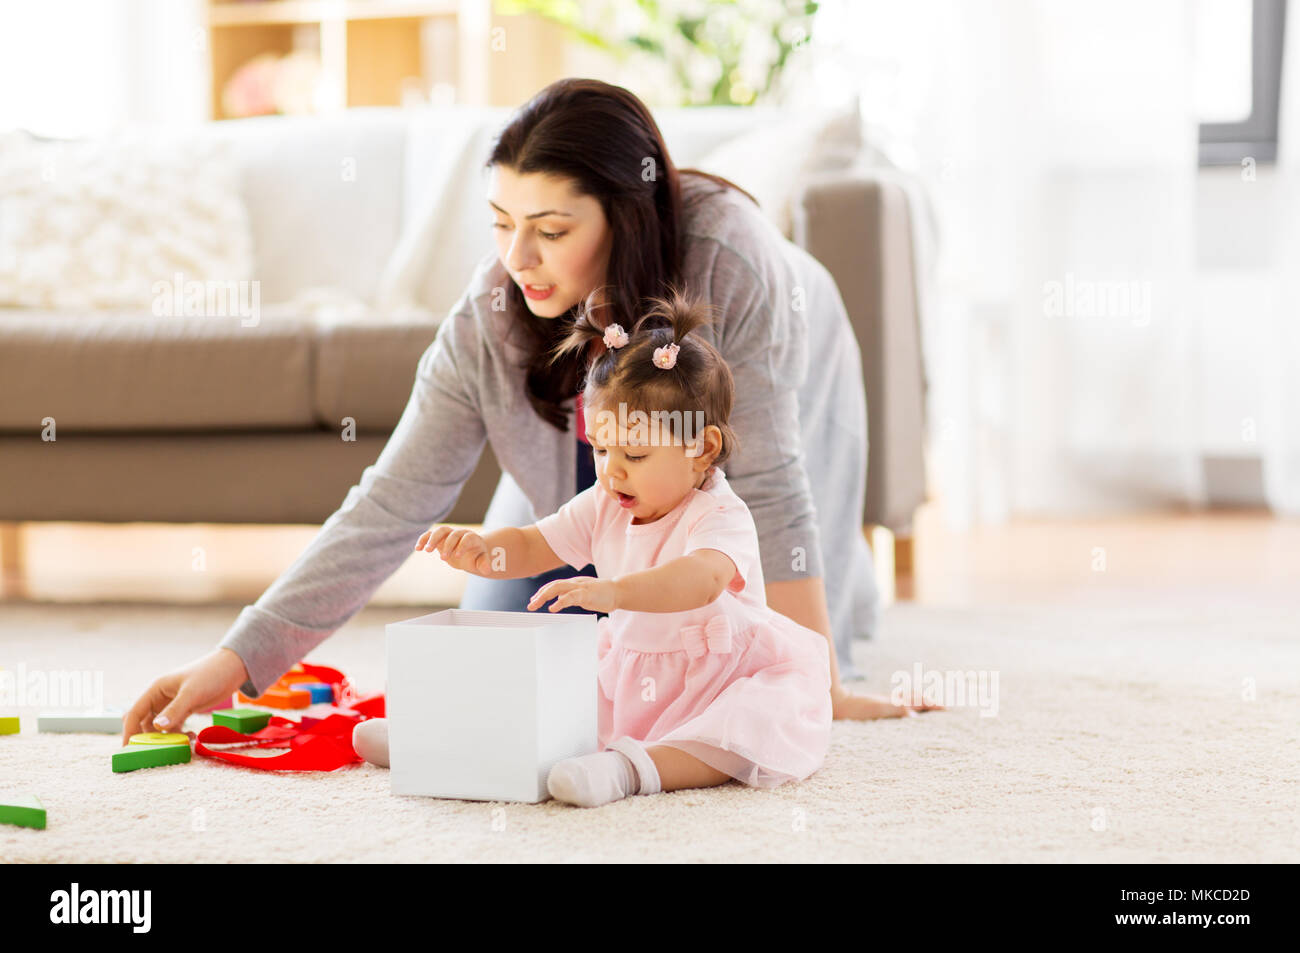 baby girl playing with toy or gift box at home - Stock Image